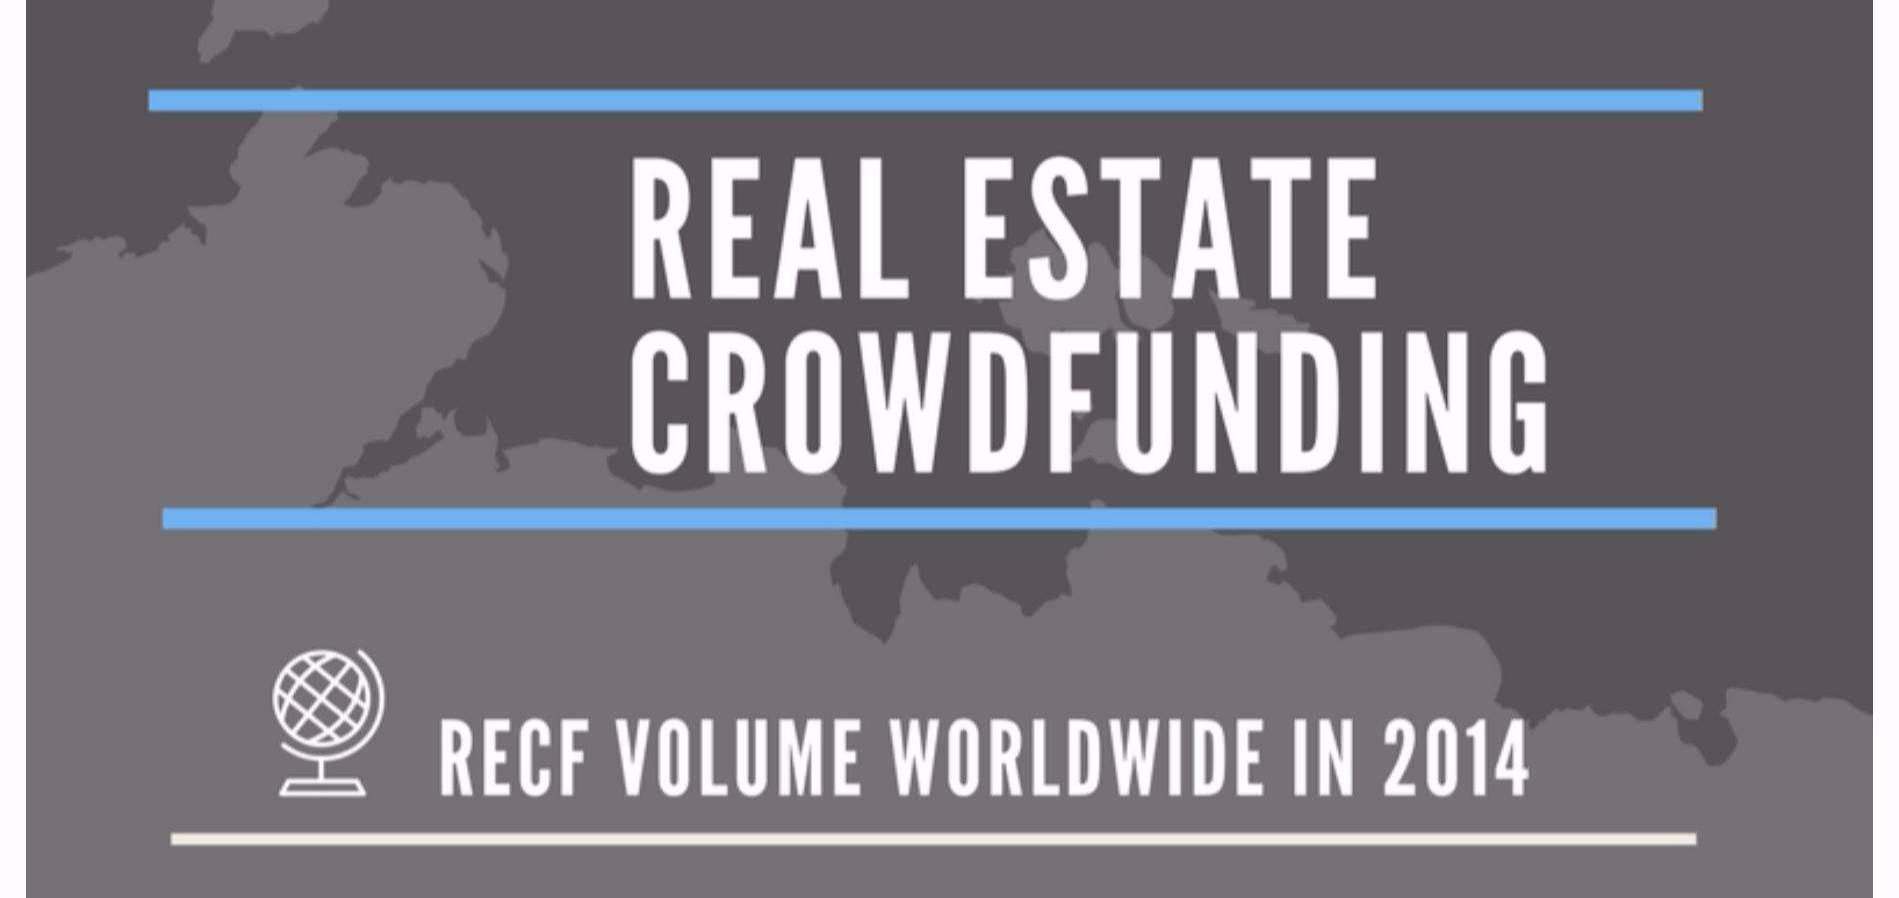 real estate crowdfunding statistics